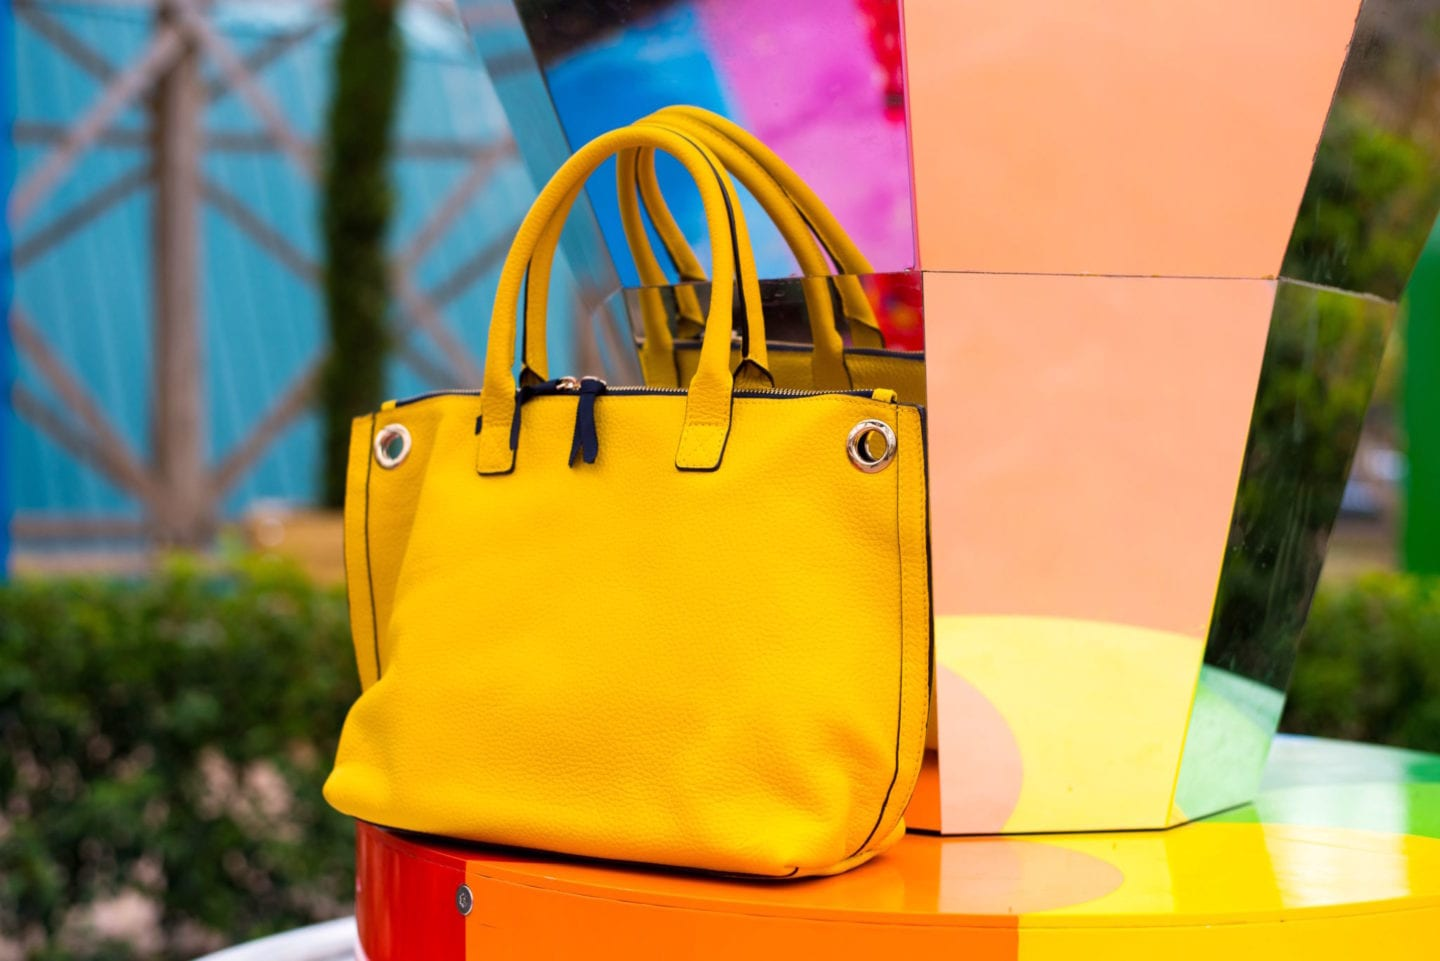 dreamland margate photoshoot boden yellow handbag tote bag